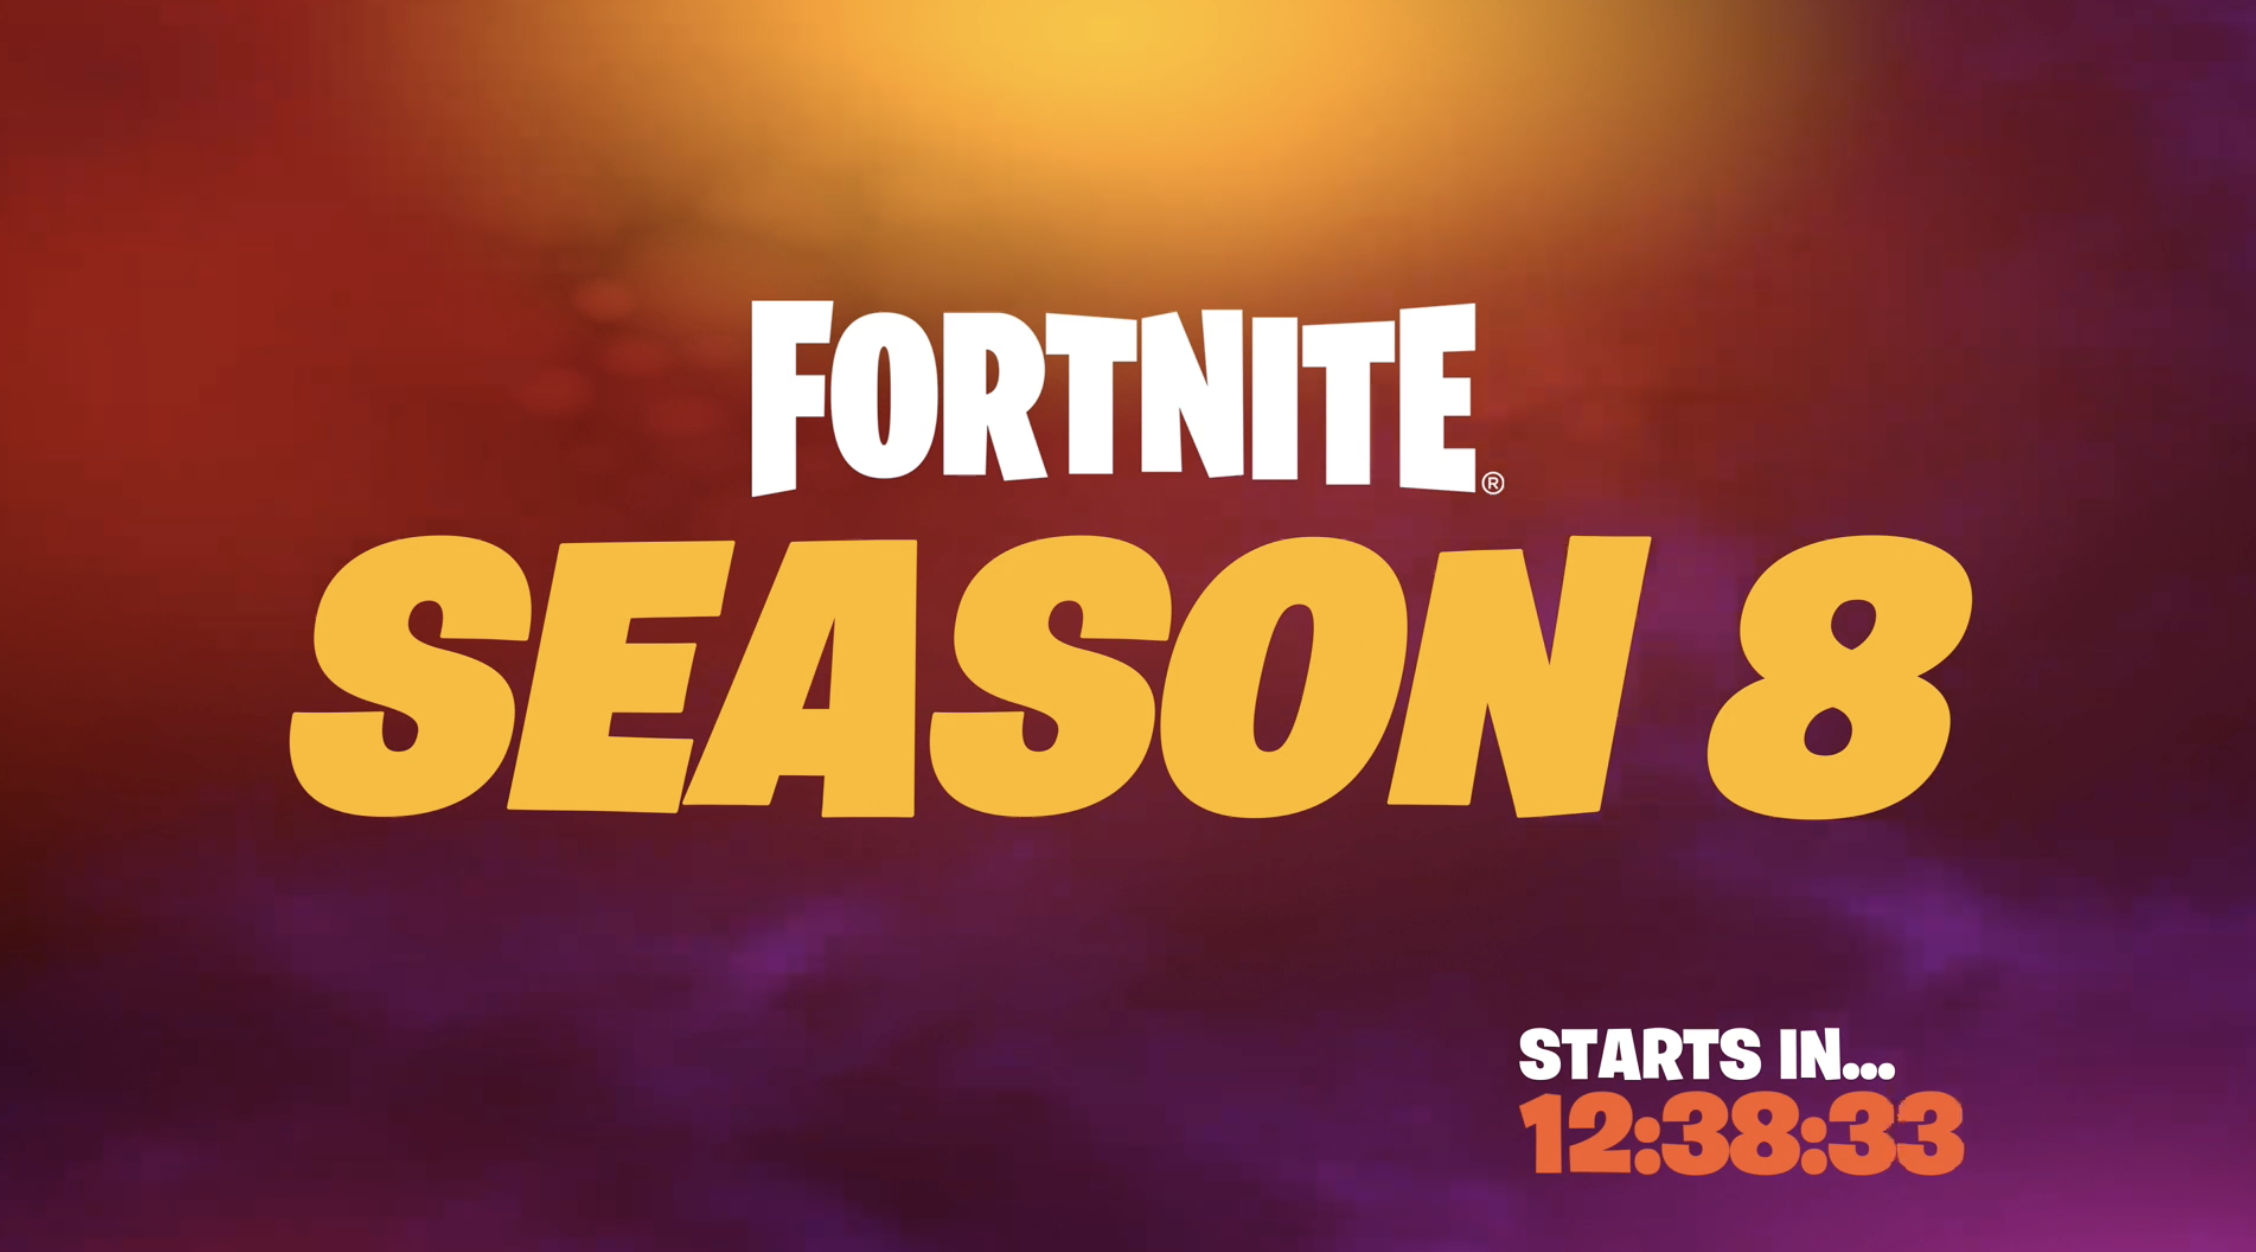 The screen players see when trying to play Fortnite